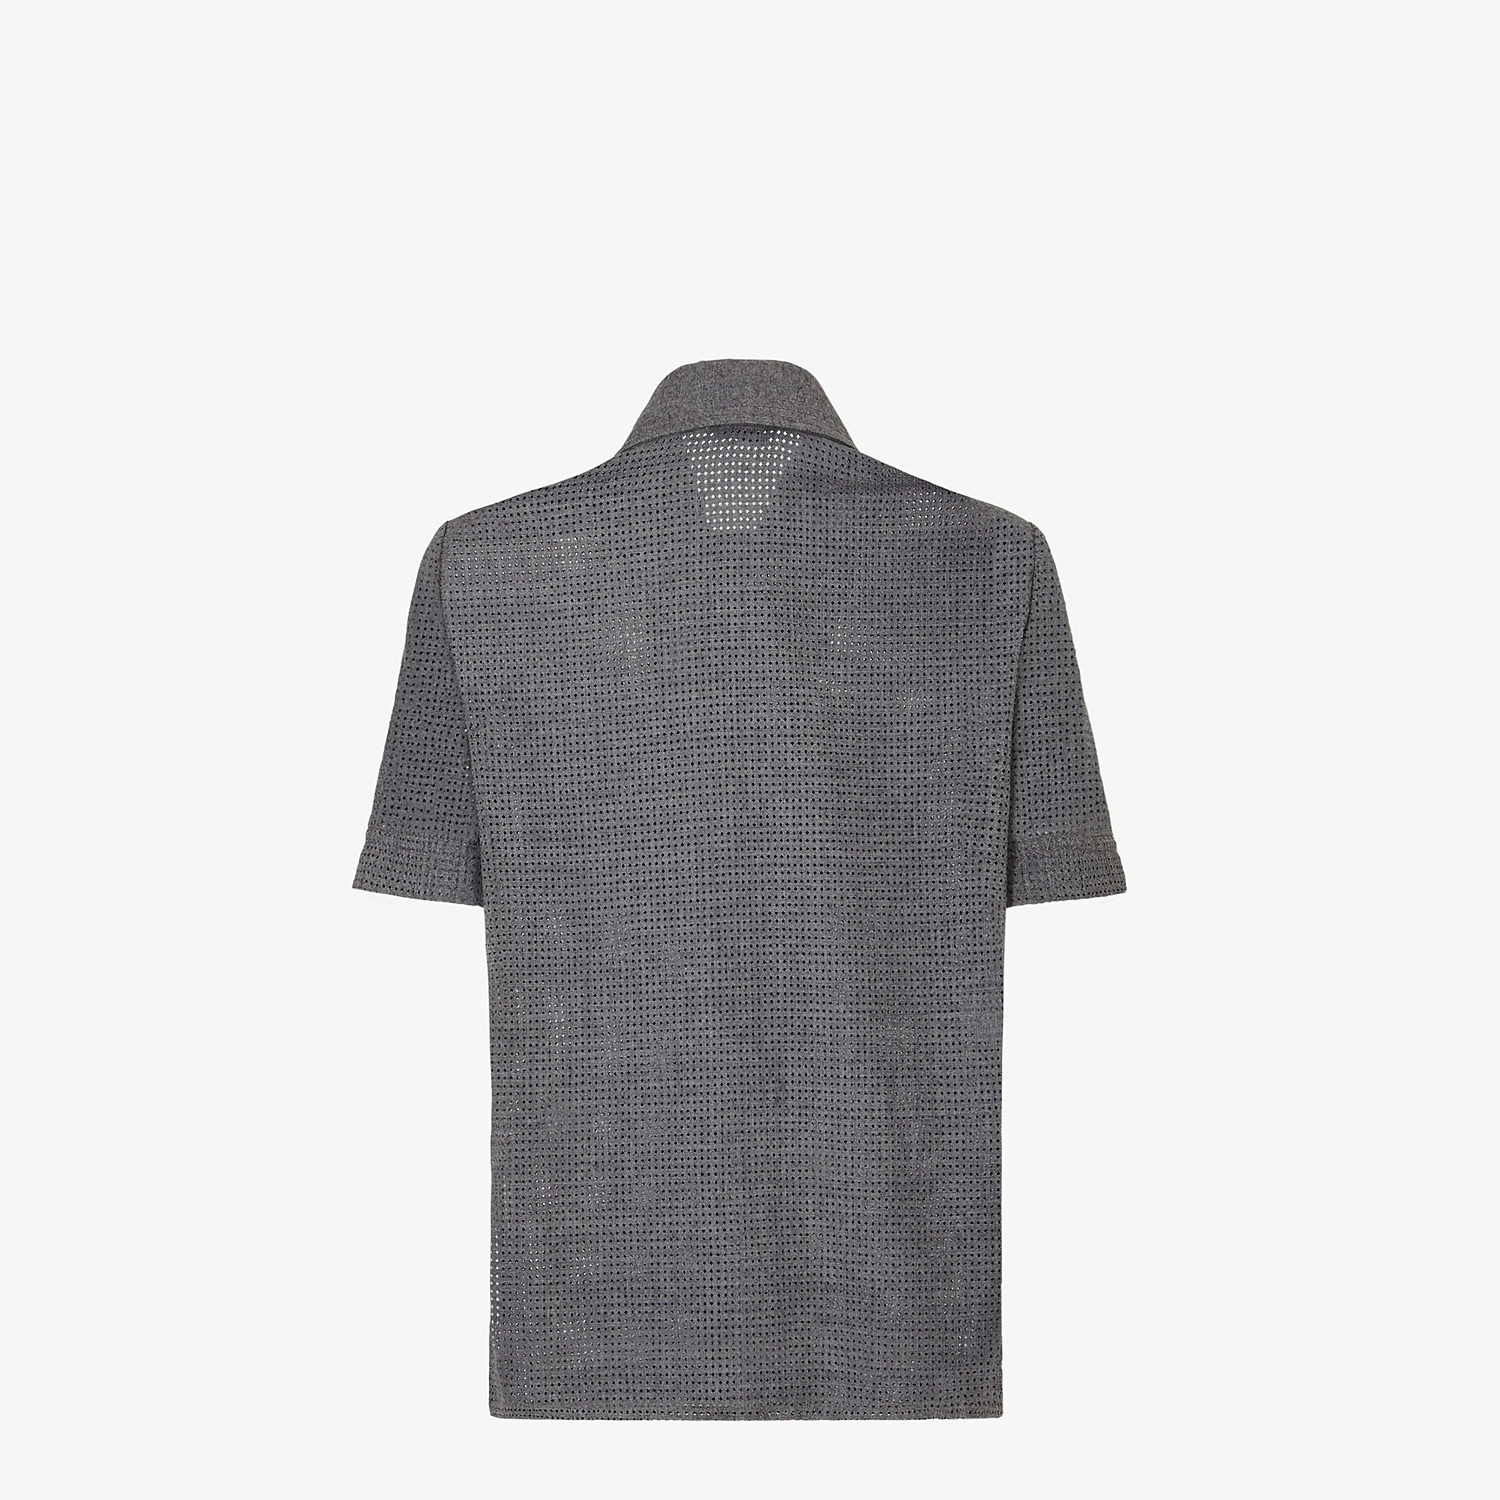 FENDI SHIRT - Gray flannel shirt - view 2 detail